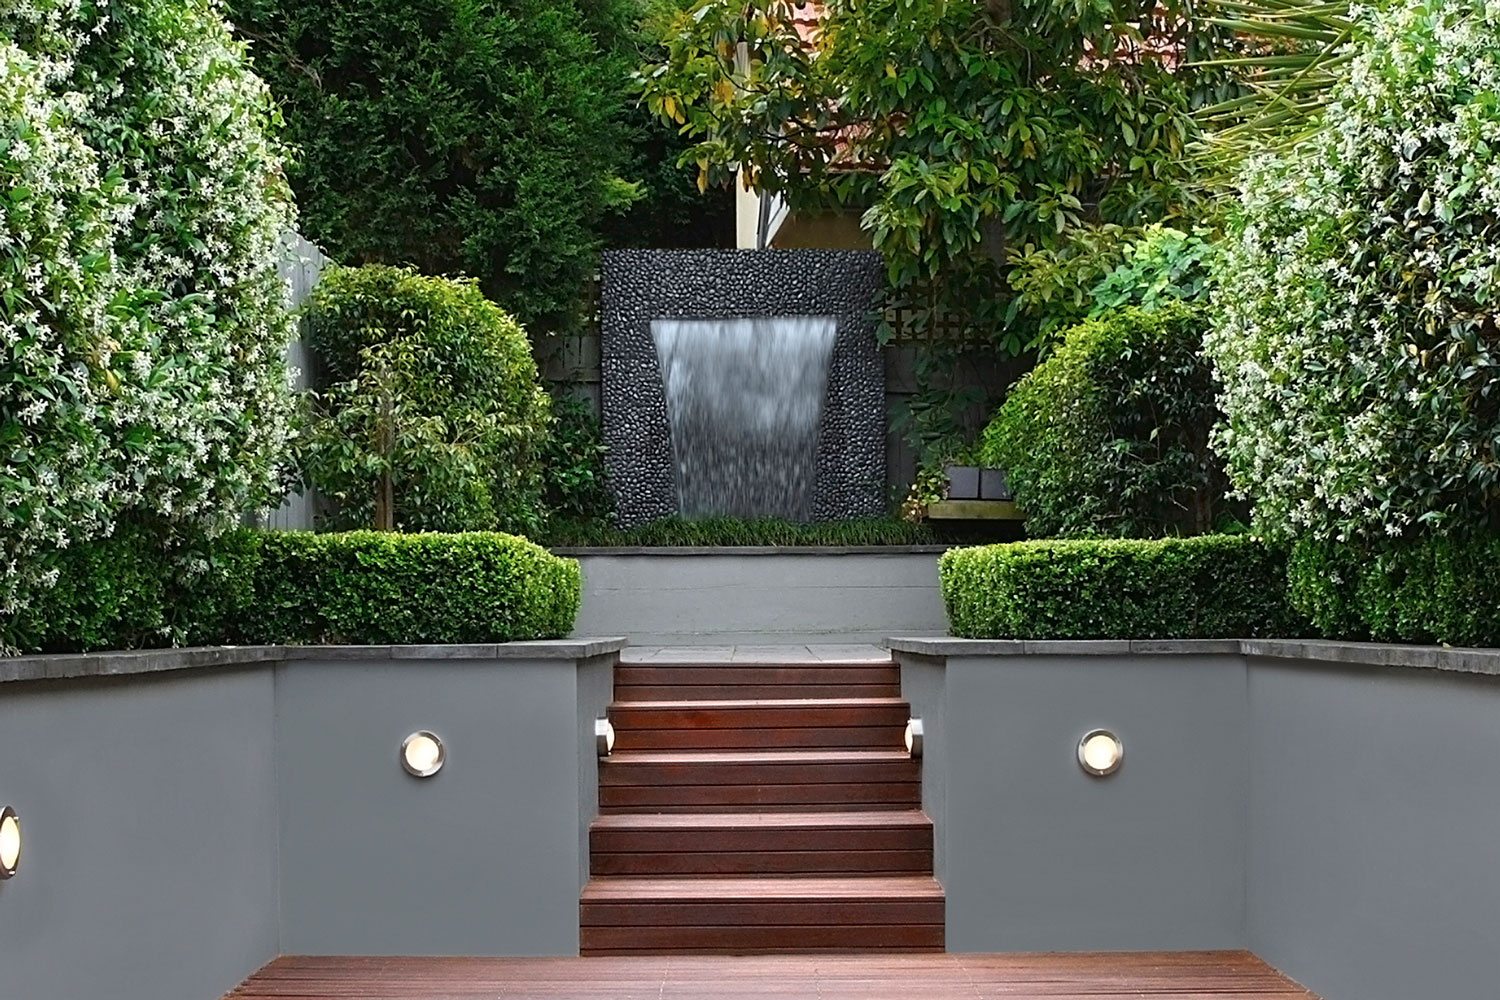 8 water feature ideas to transform your outdoor garden ... on Water Feature Ideas For Patio id=51567